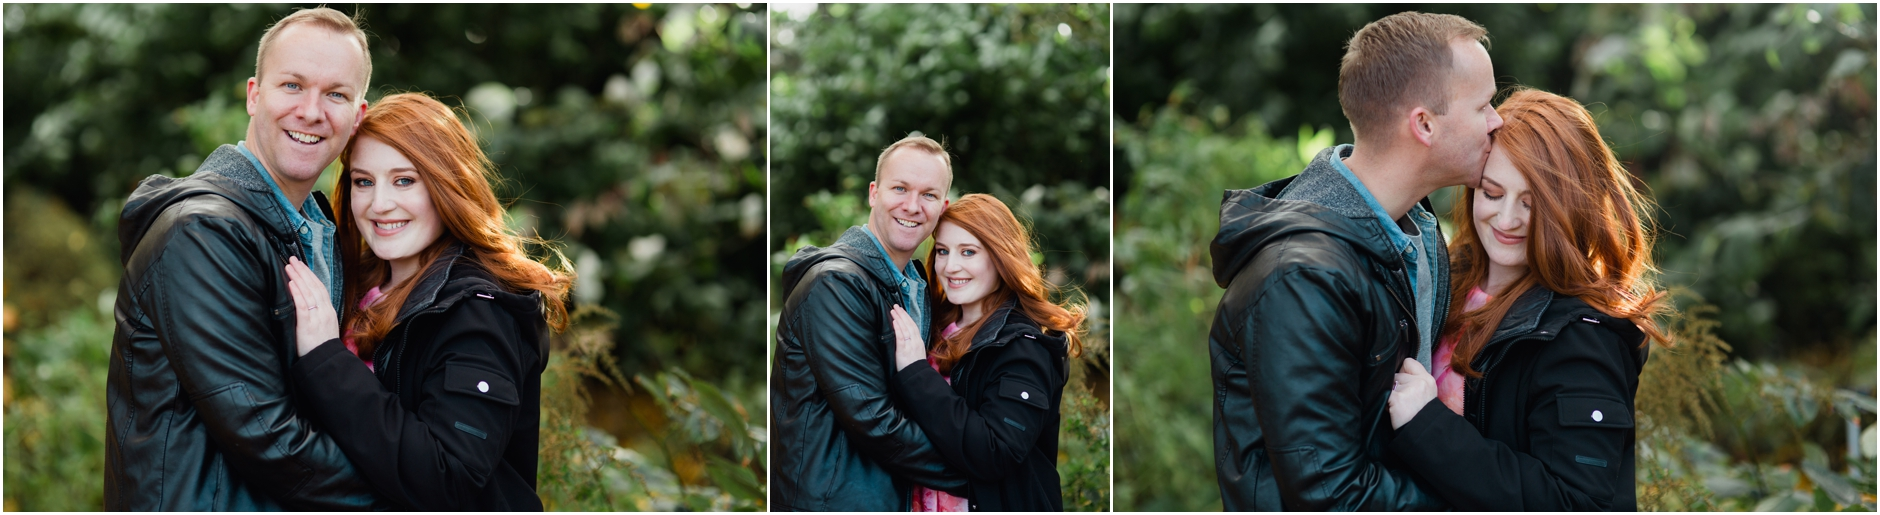 edinburgh wedding photographer pre wedding shoot engagement